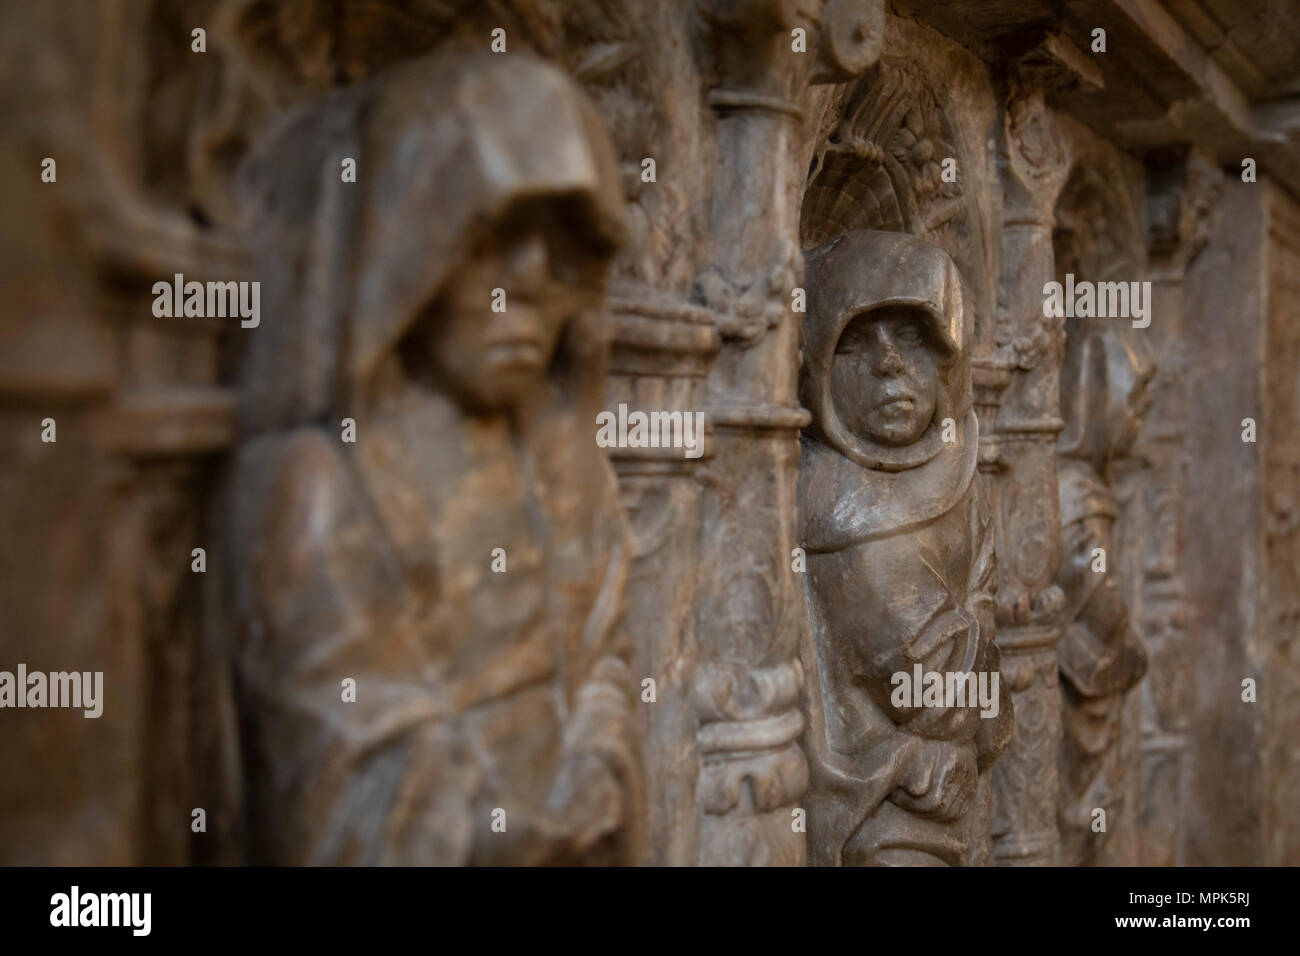 Interior stone carvings in Narbonne Cathedral in Narbonne, France ...